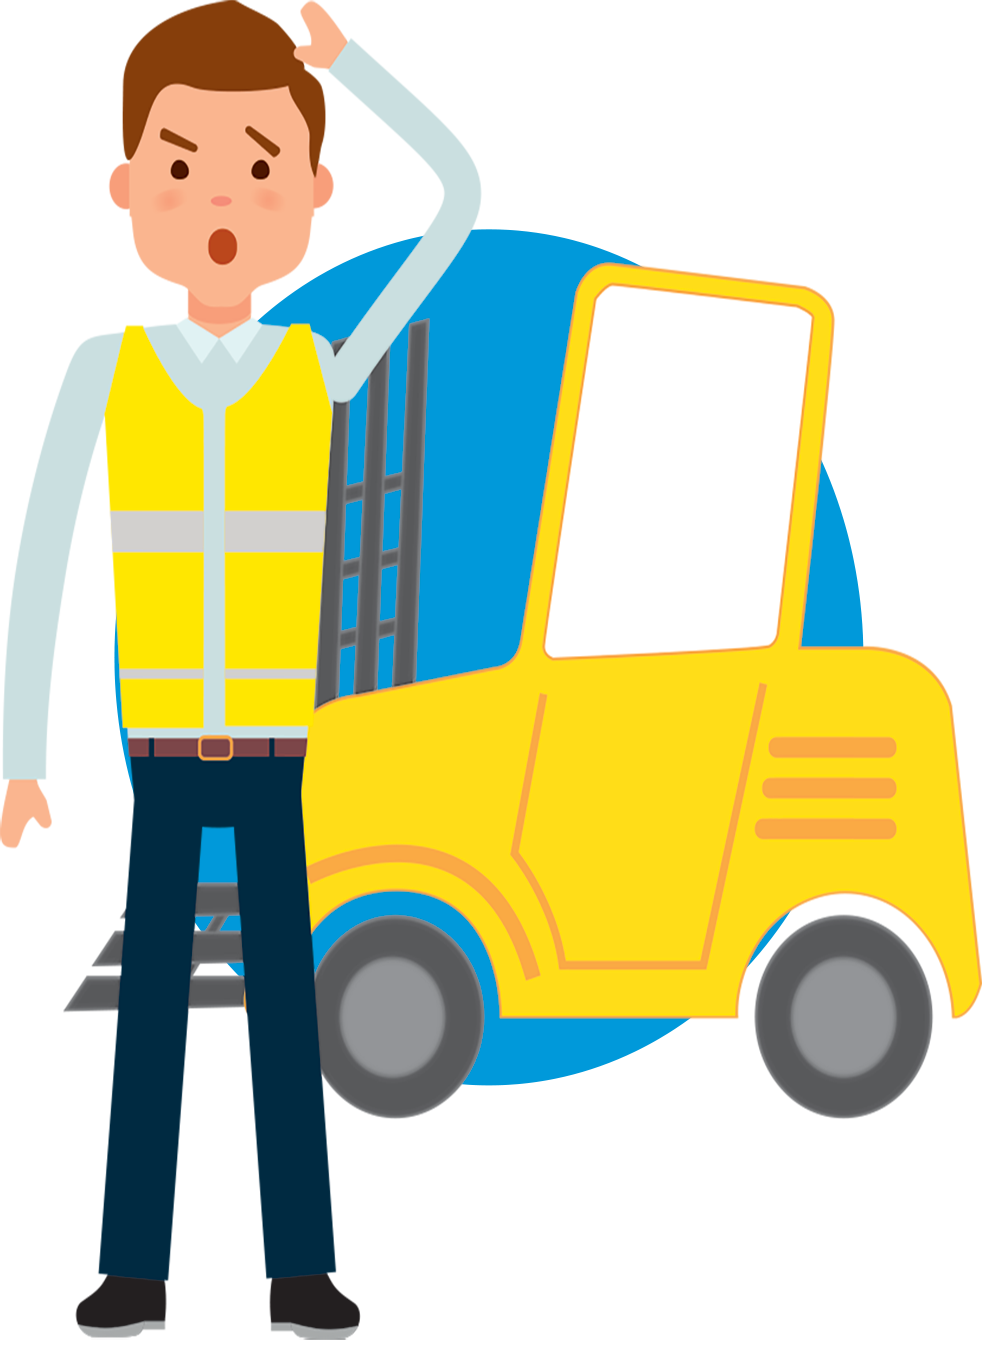 Employee clipart warehouse employee. Flt pre use inspections